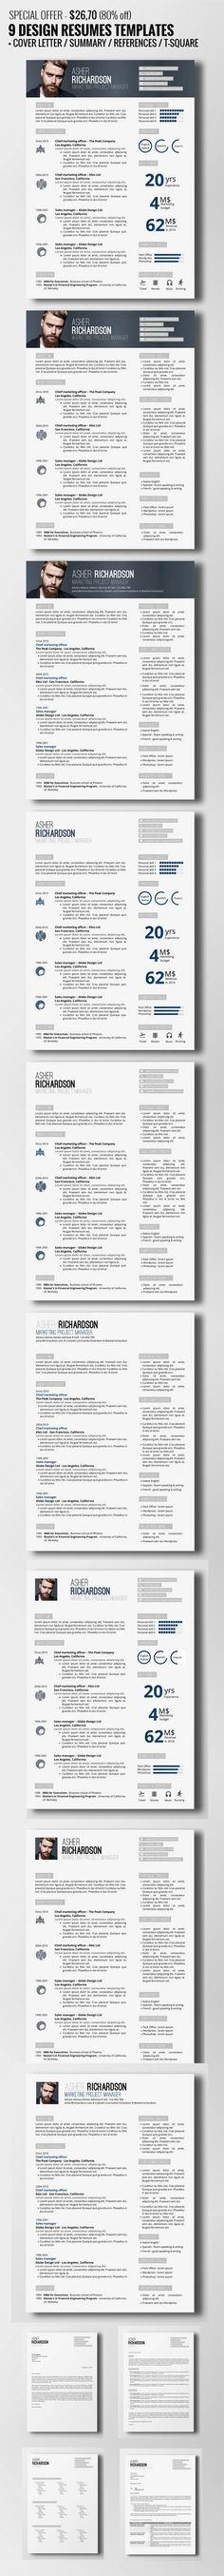 435 best Resume images on Pinterest Resume design, Design resume - best skills for resume